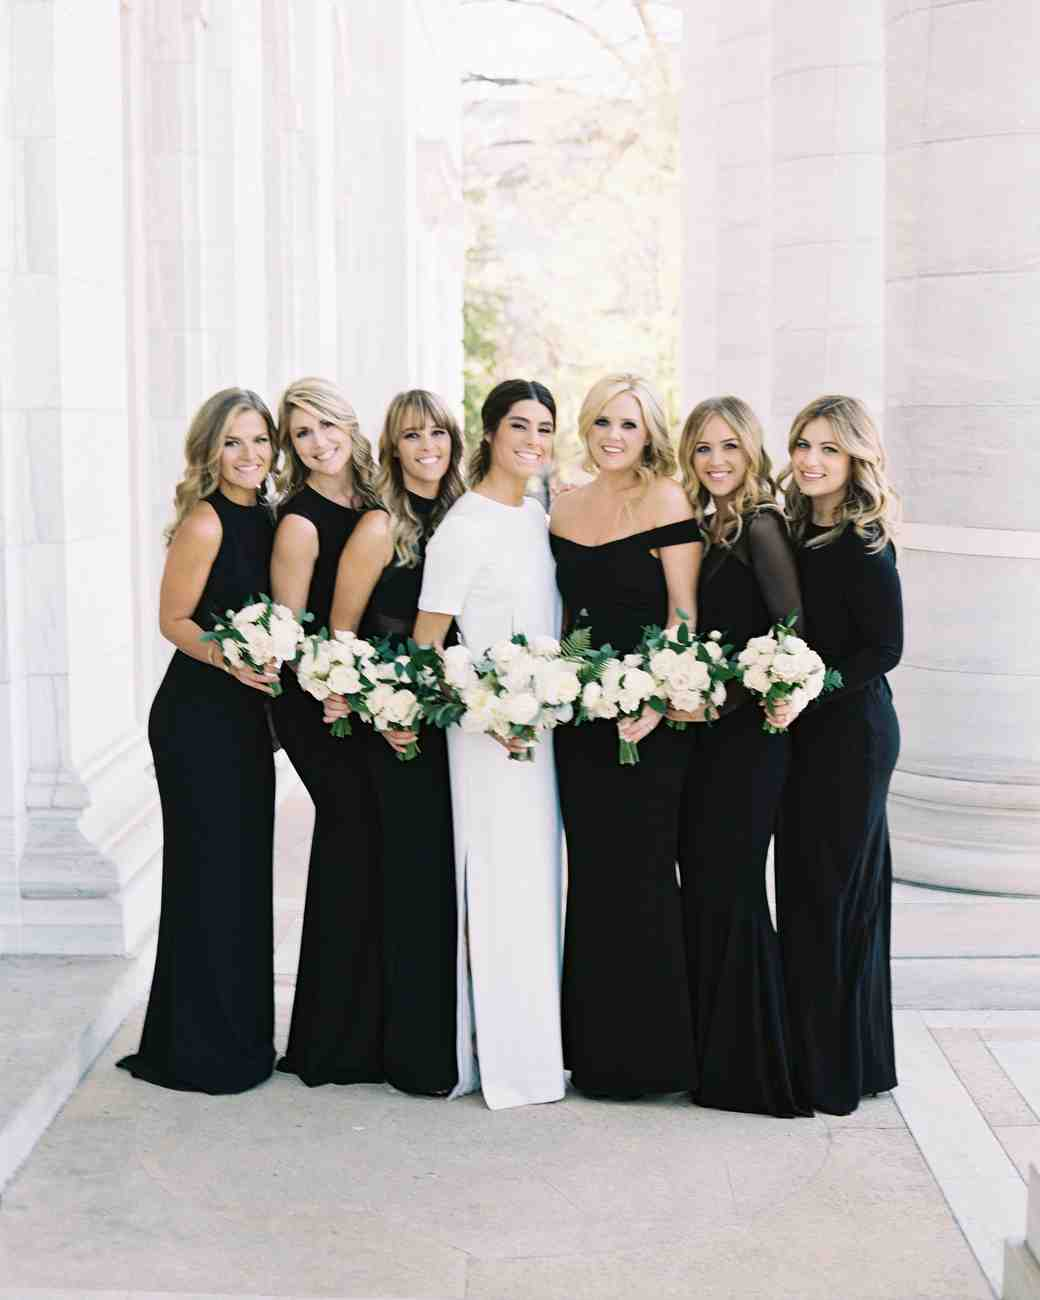 Bridesmaid Wedding dresses black photos